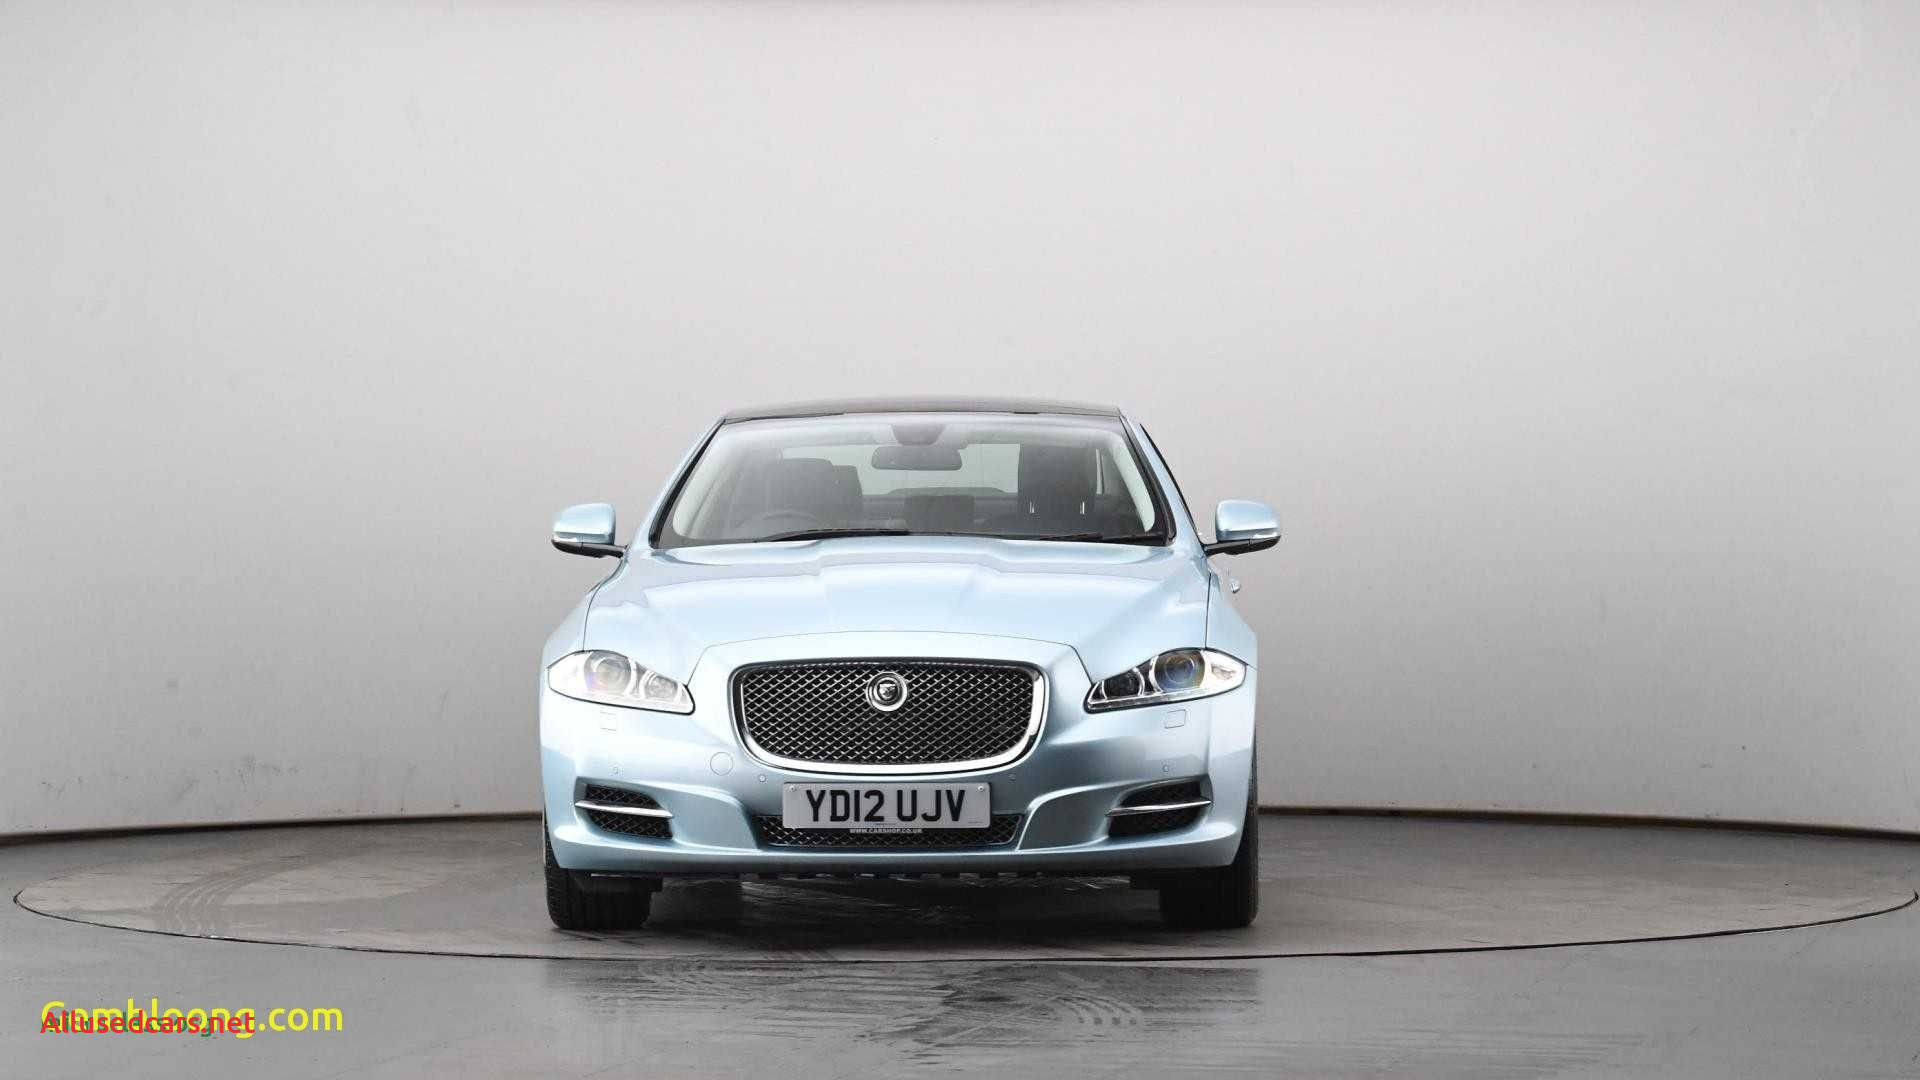 2013 Jaguar Xf Beautiful Looking for A Car to Buy Best Used Car Purchase Agreement